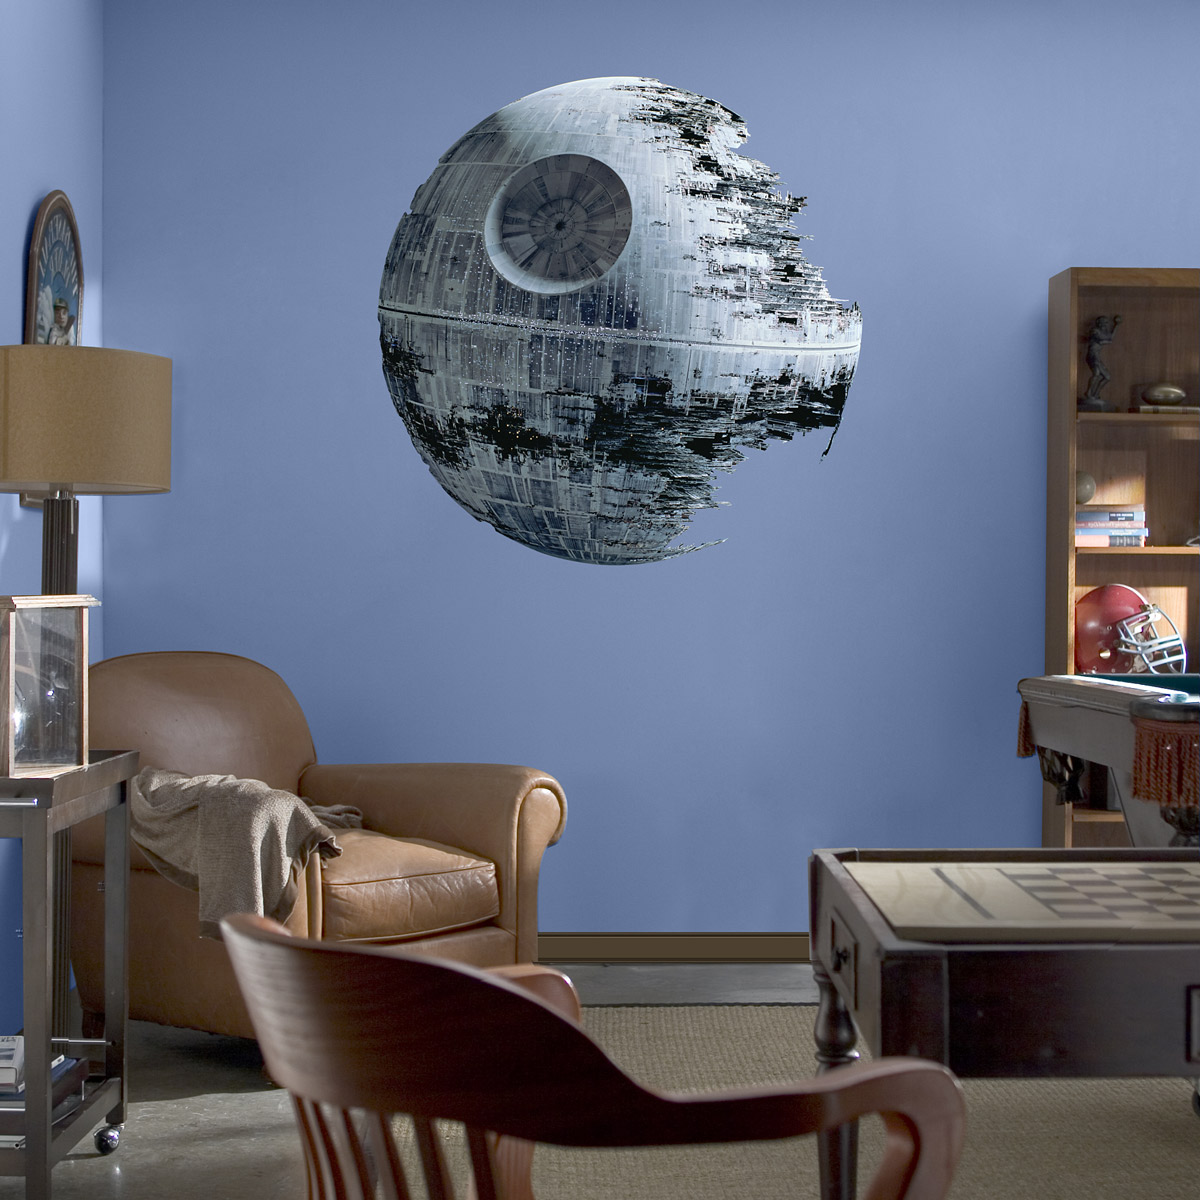 Star Wars Death Star Ii Giant Fathead Wall Graphic The